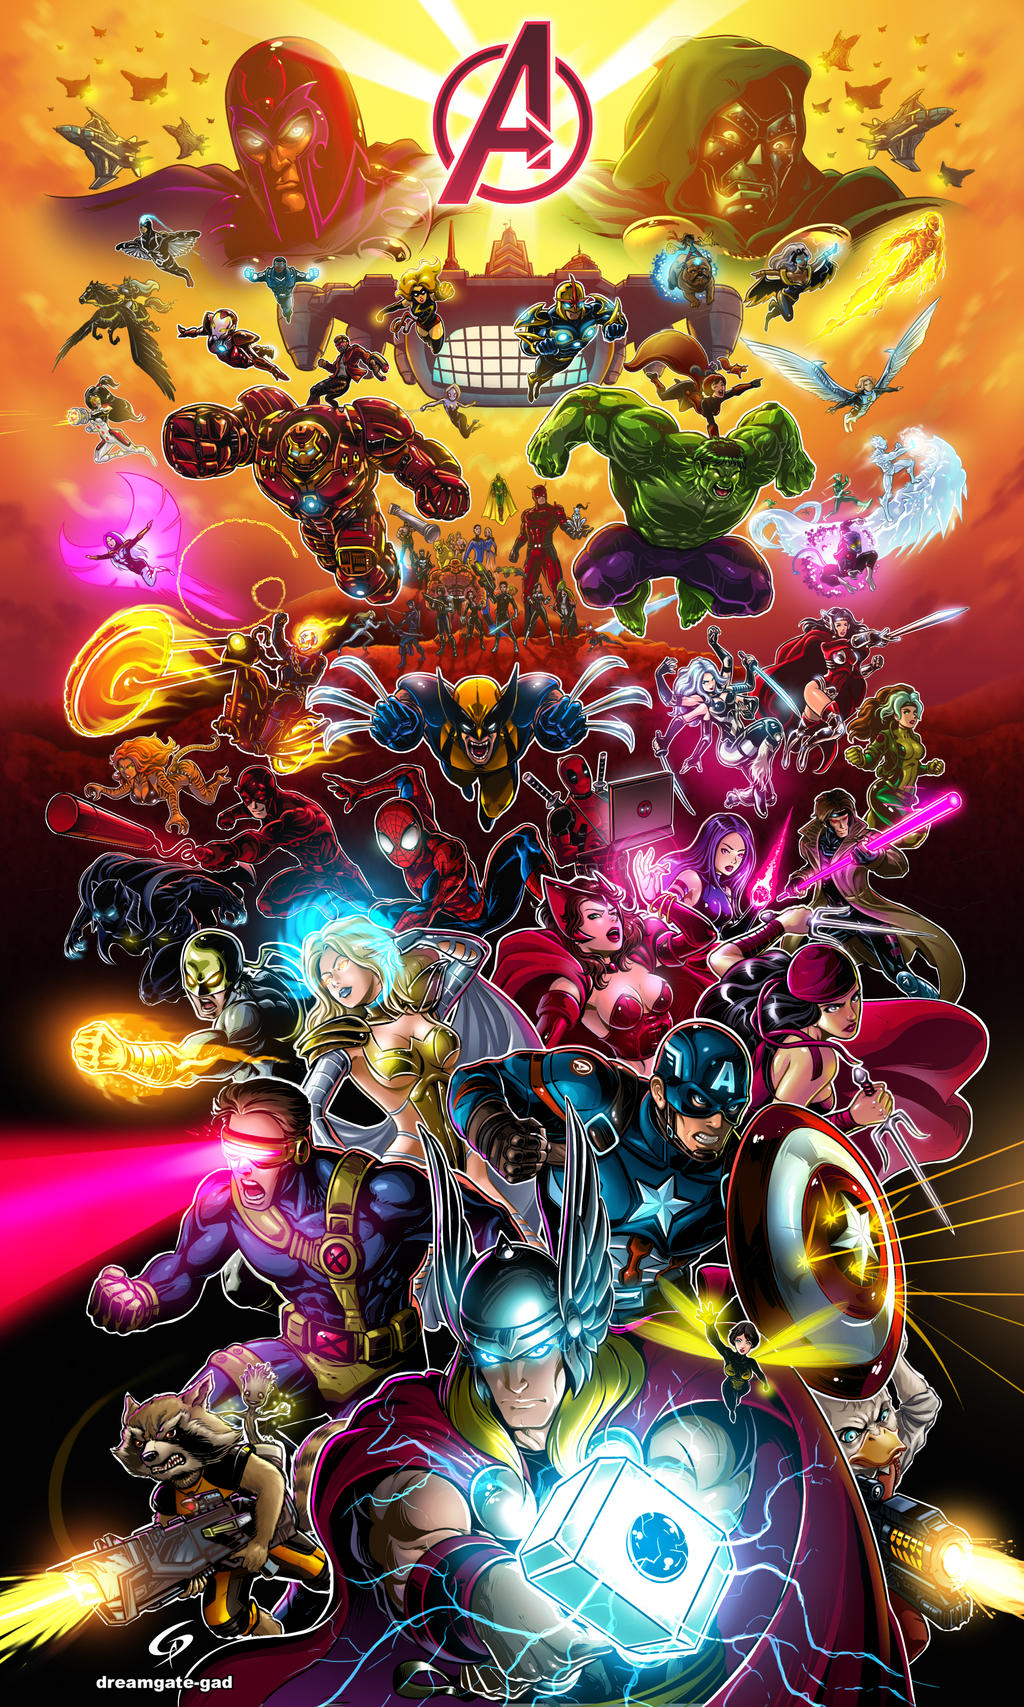 Marvel Avengers Alliance Assemble Forever by GAD by Dreamgate-Gad